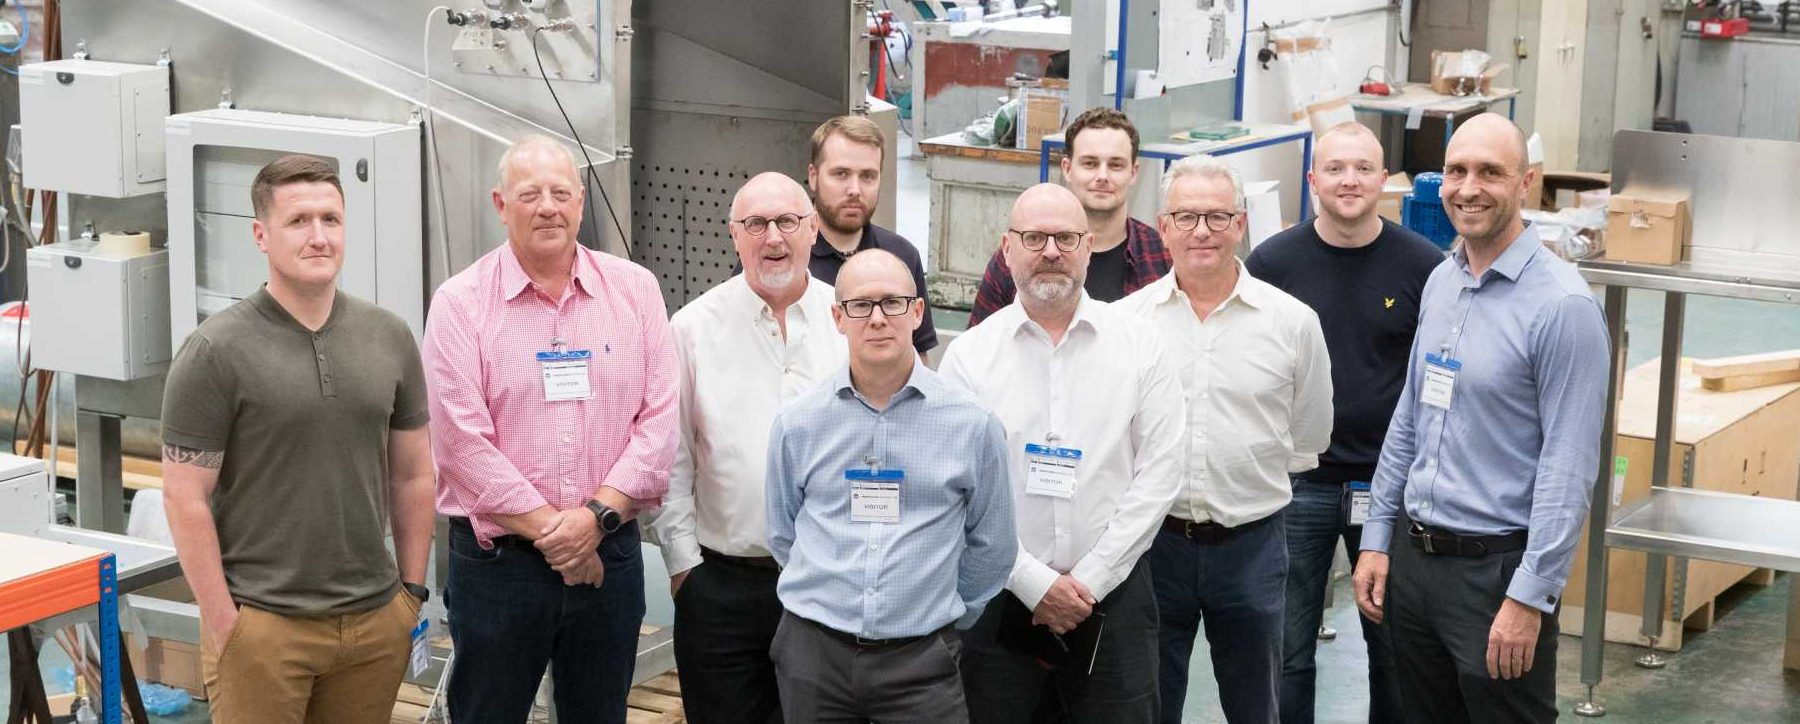 SME manufacturers = The 12 business leaders recently undertook their first site visit to Runcorn-based Hosokawa Micron – image courtesy of Made Smarter.